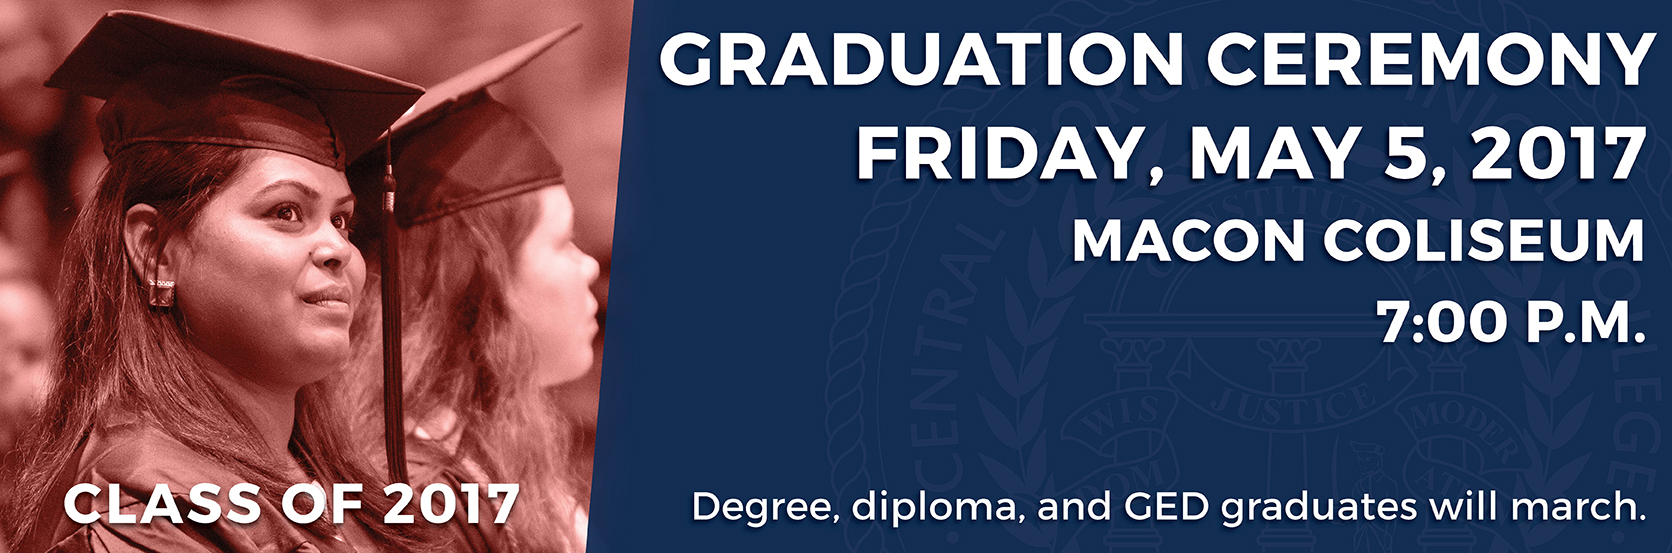 Graduation will be held at the Macon Coliseum on Friday, May 5th 2017 at 7:00 p.m.